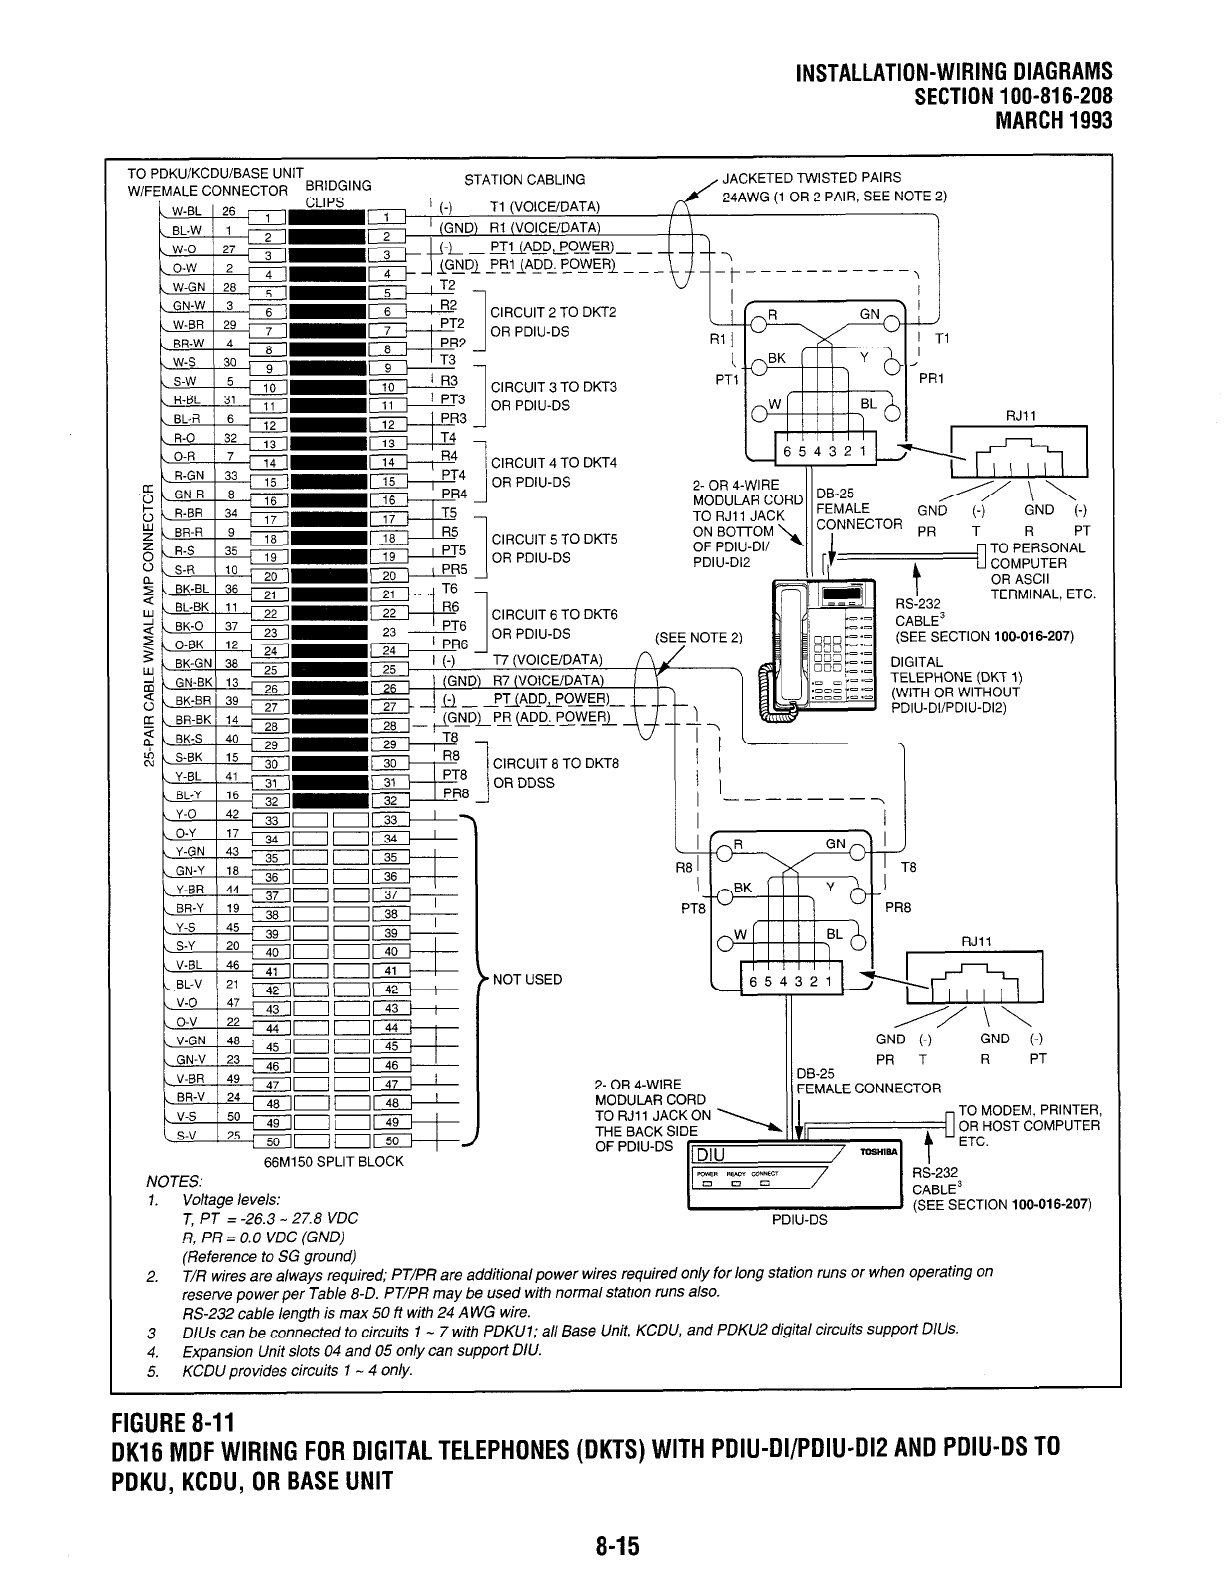 52c30e44 eb3d 42ea a7fe 5e185b64a3b0 bgd1 page 209 of toshiba cell phone strata dk8 user guide Home Phone Wiring Diagram at mr168.co